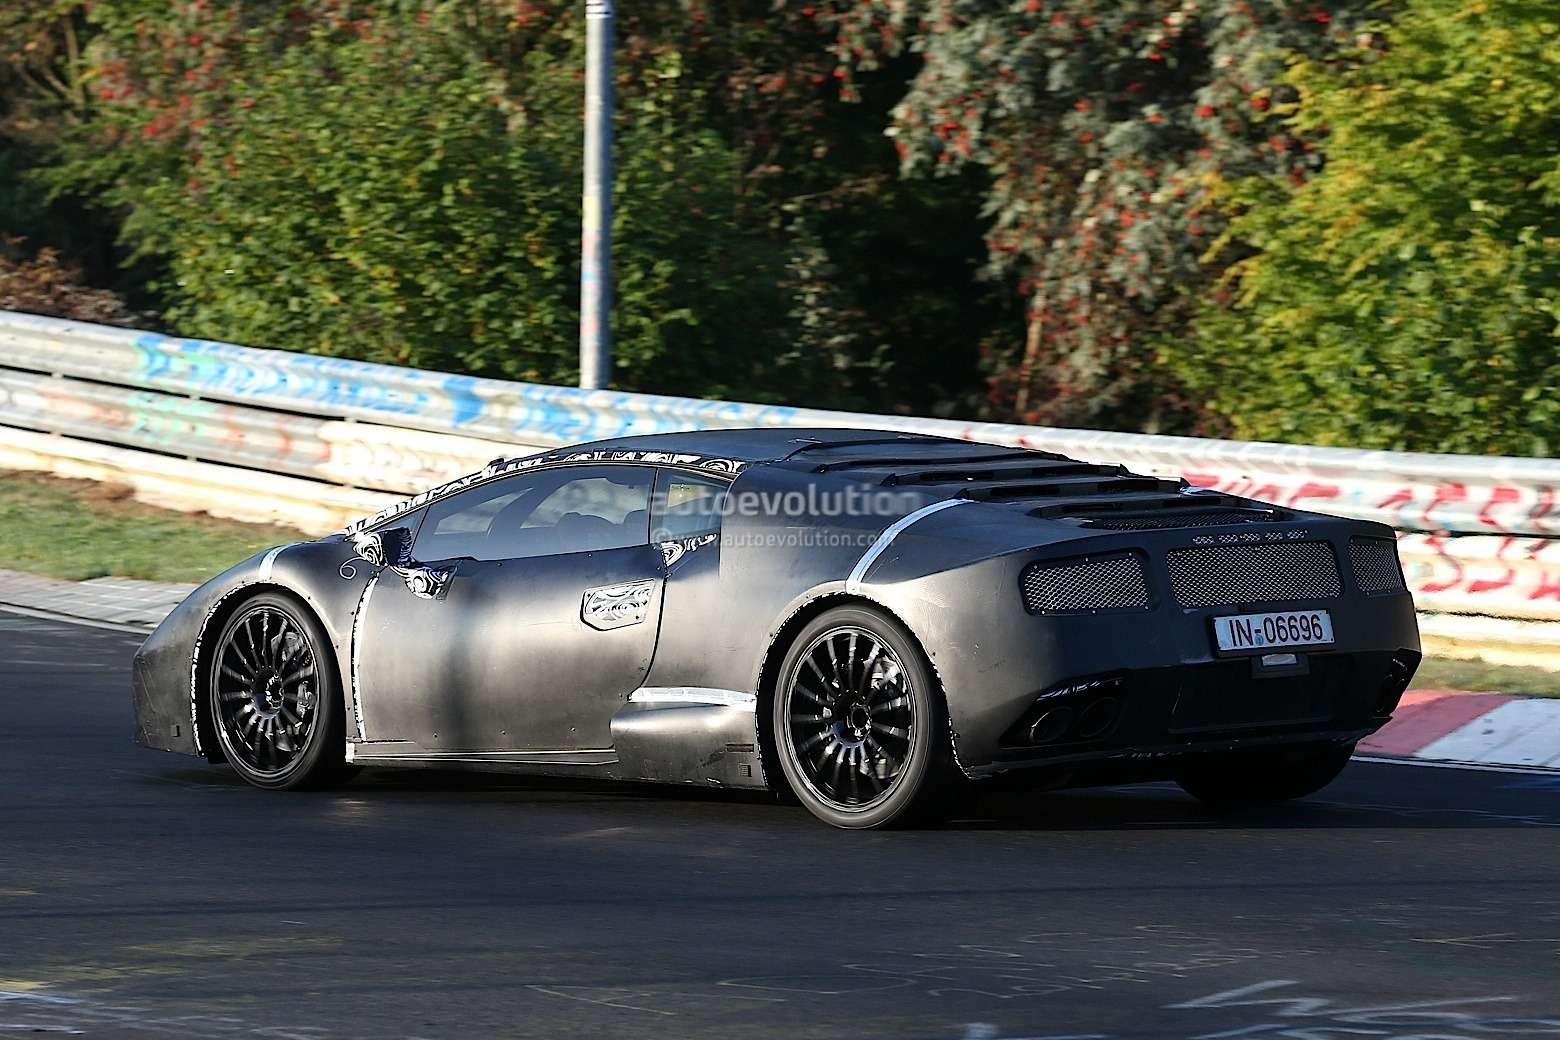 spyshots lamborghini cabrera lp600 4 at nurburgring 1080p 7 no copyright